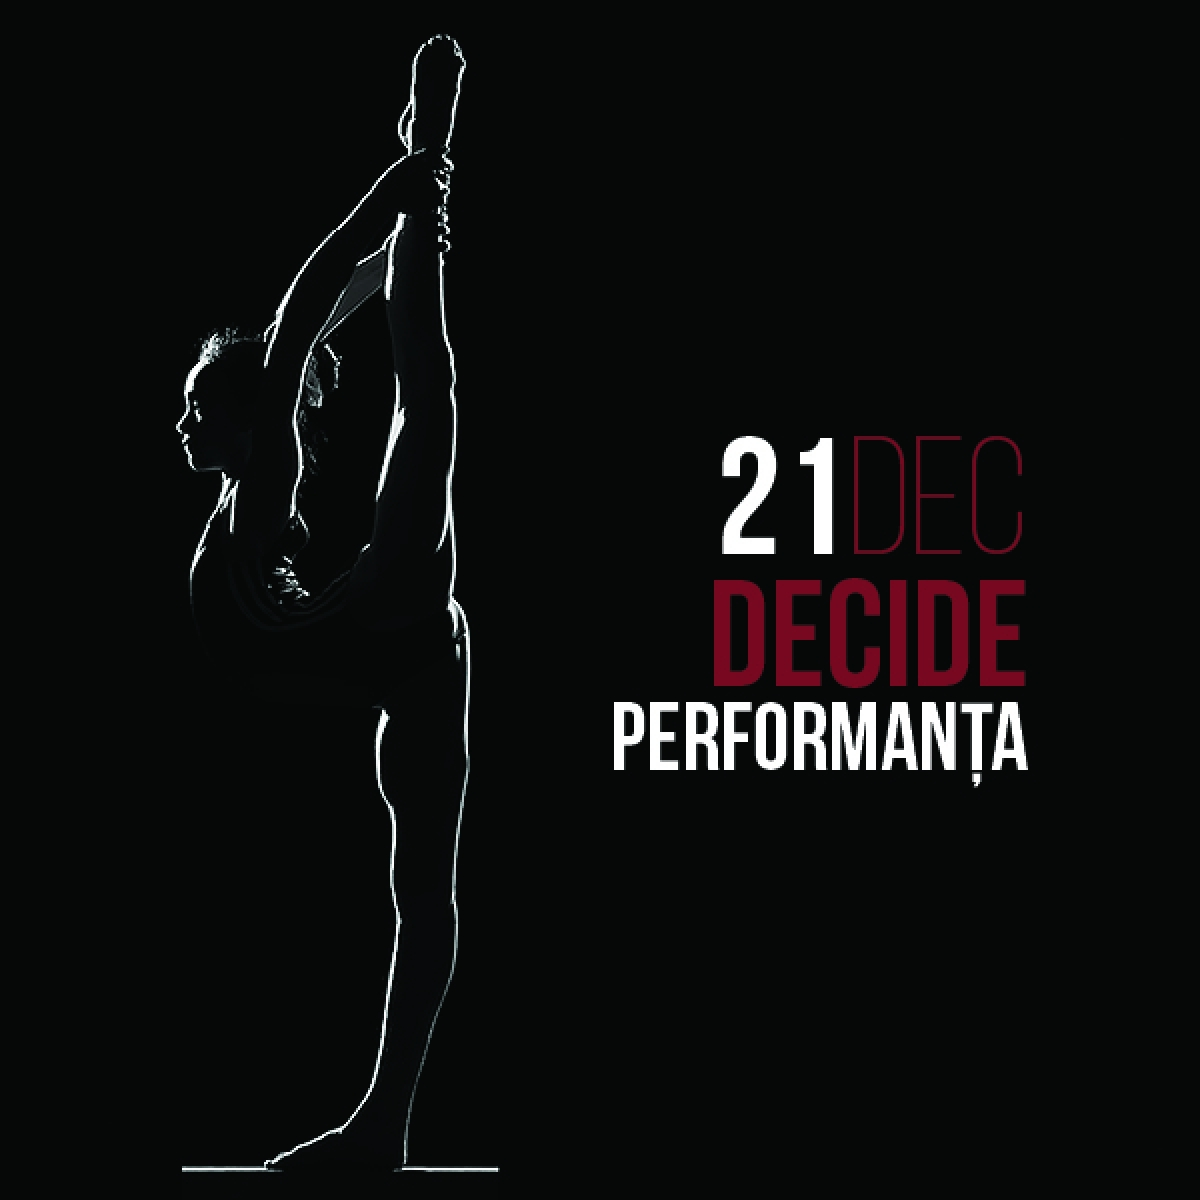 21 Dec. Decide Performanța